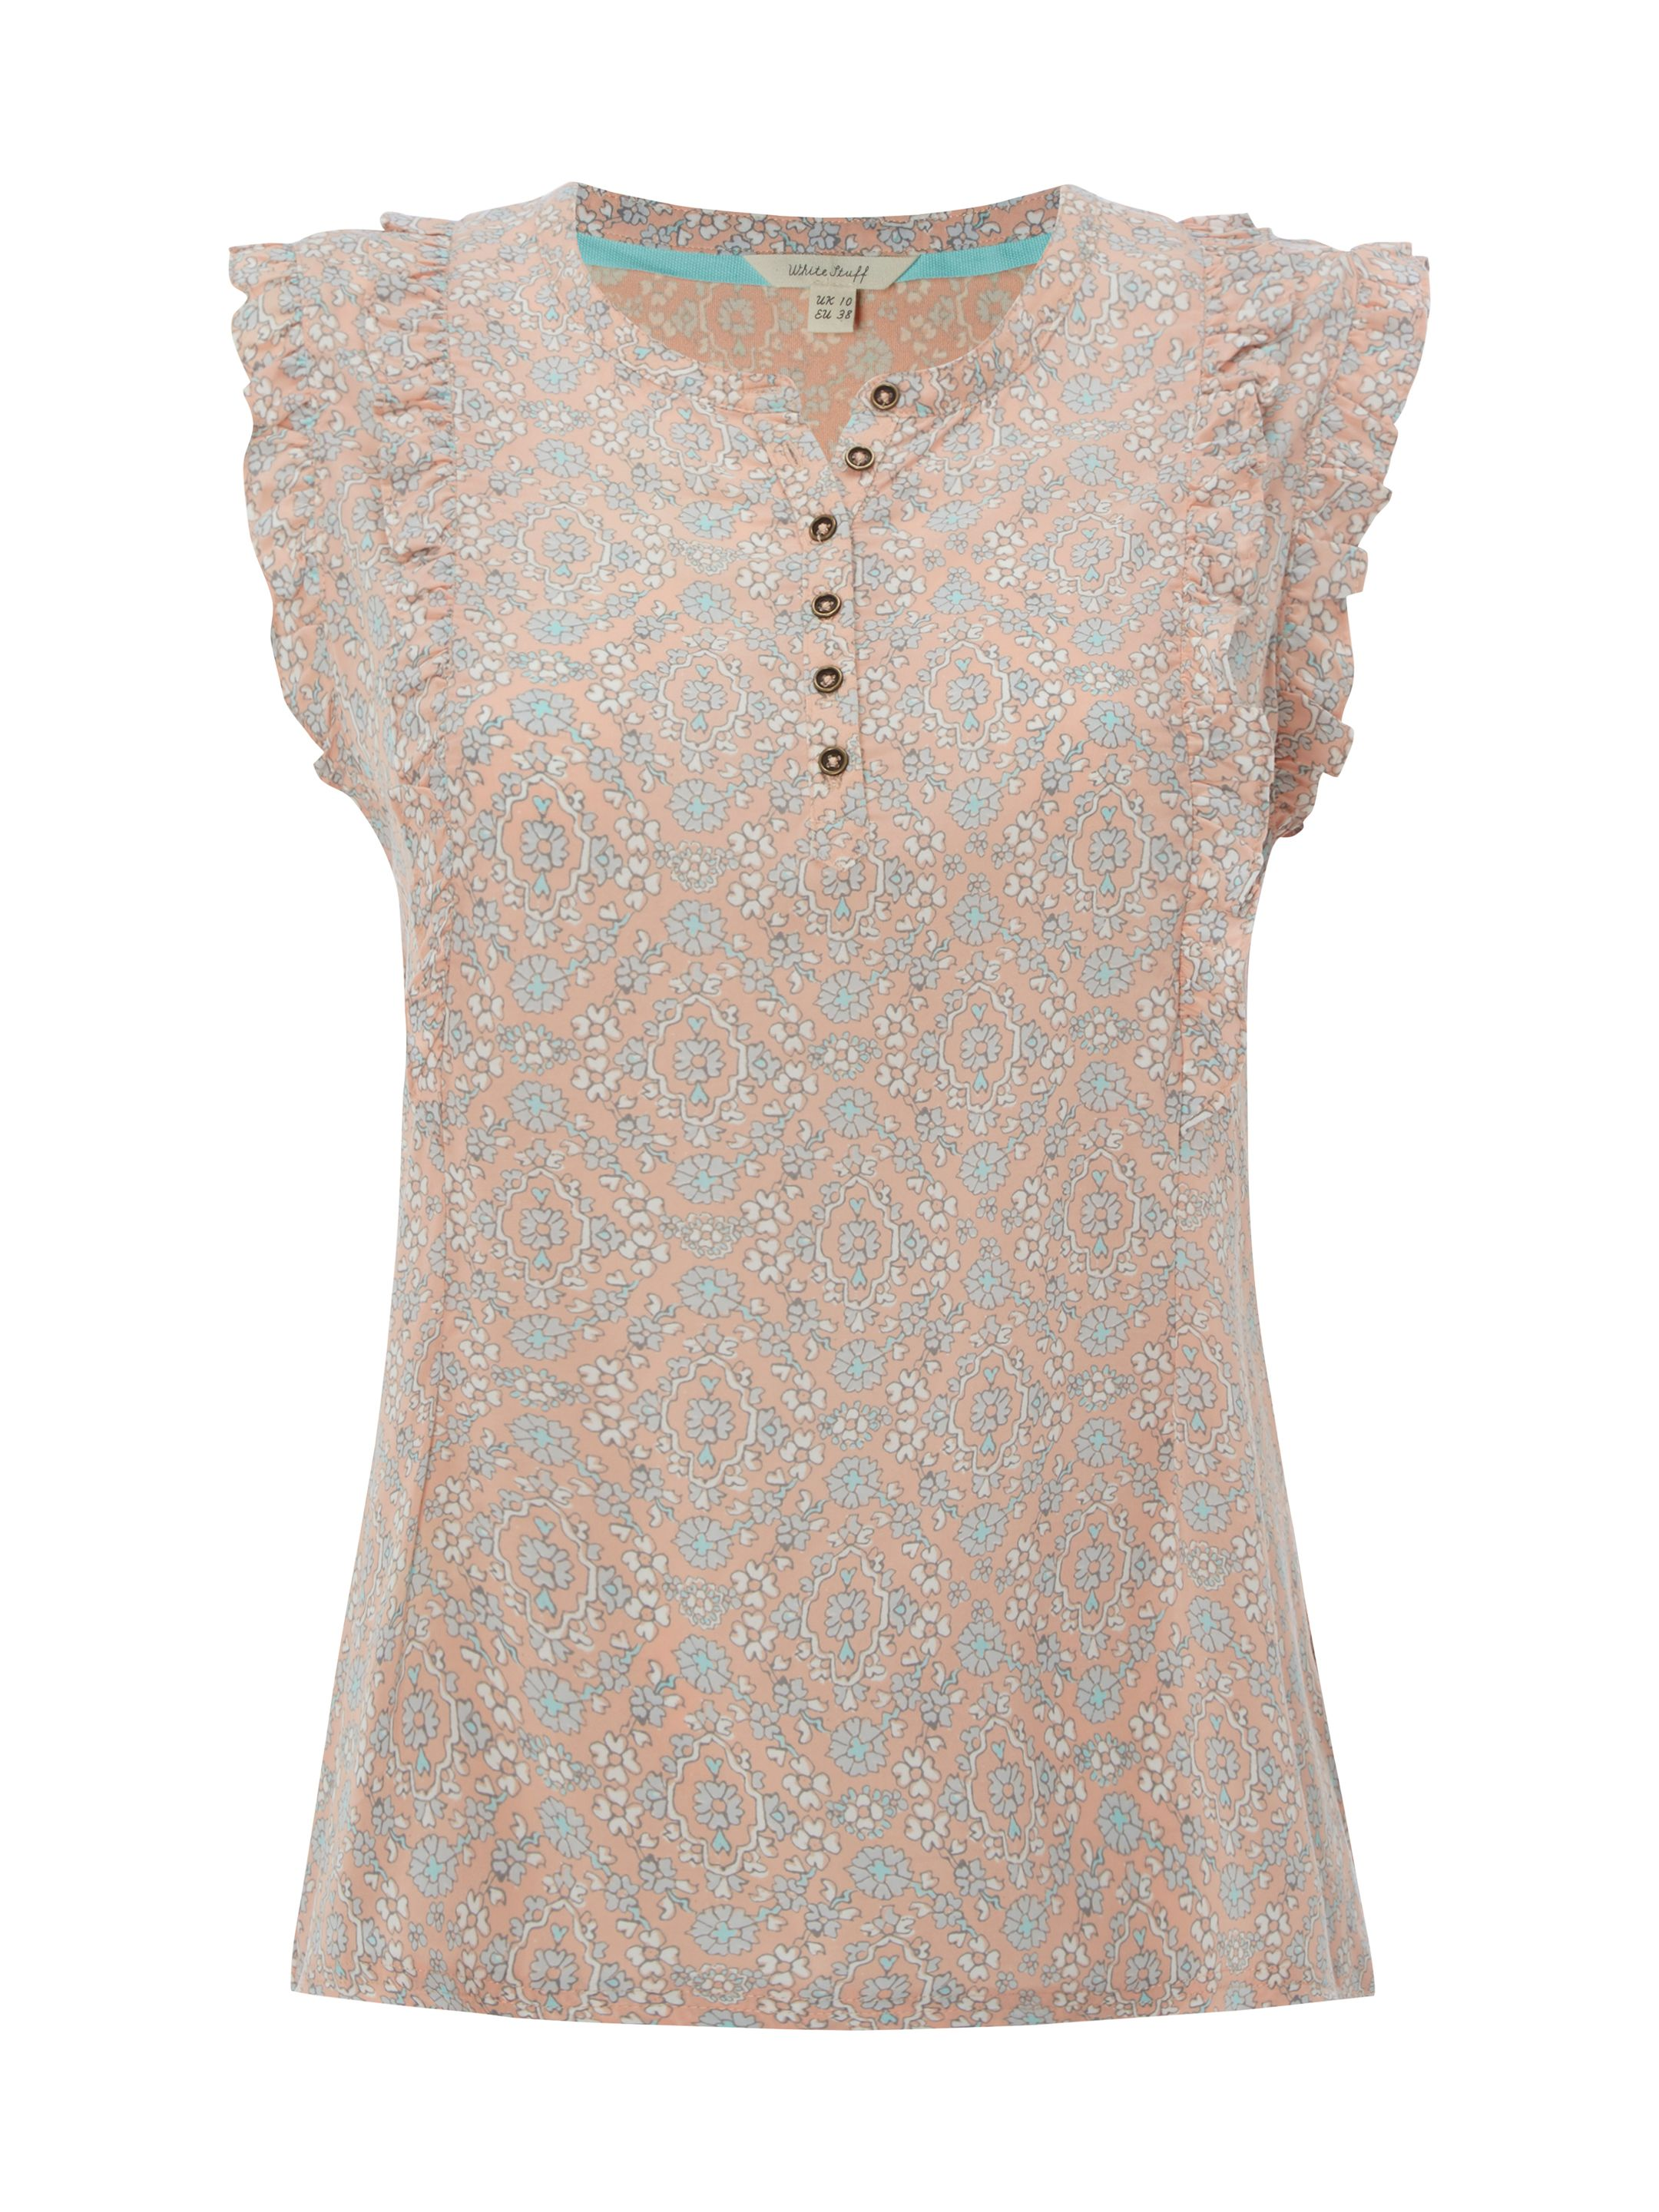 White Stuff Frilly Sleeveless Jersey Shirt, Apricot